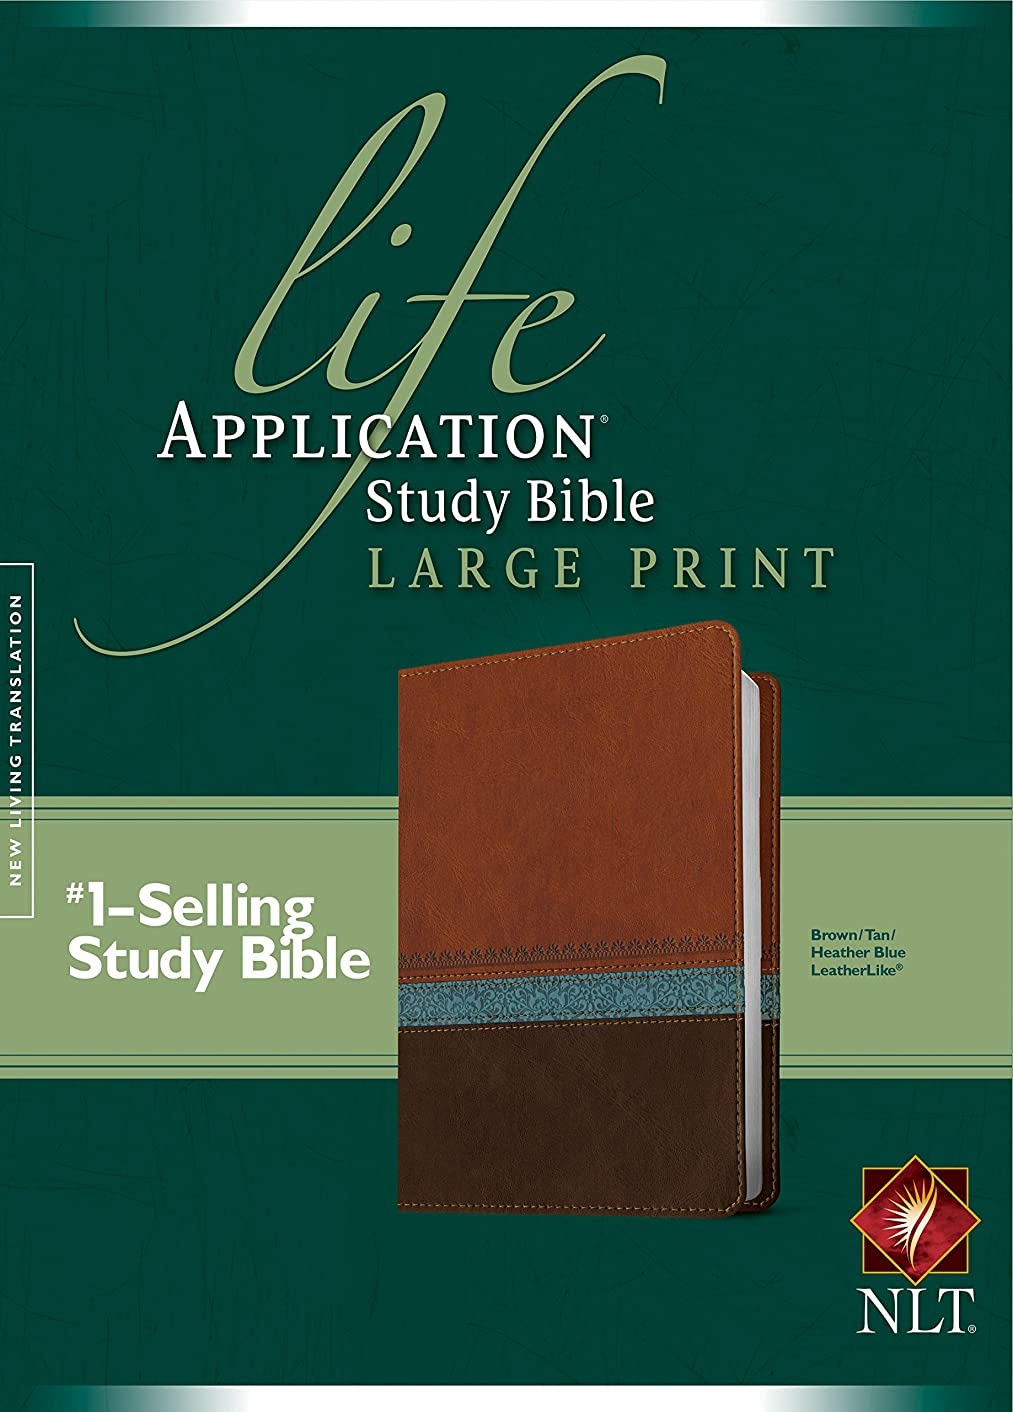 NLT Life Application Study Bible, Second Edition, Large Print (Red Letter, LeatherLike, Heather Blue/Brown/Tan)